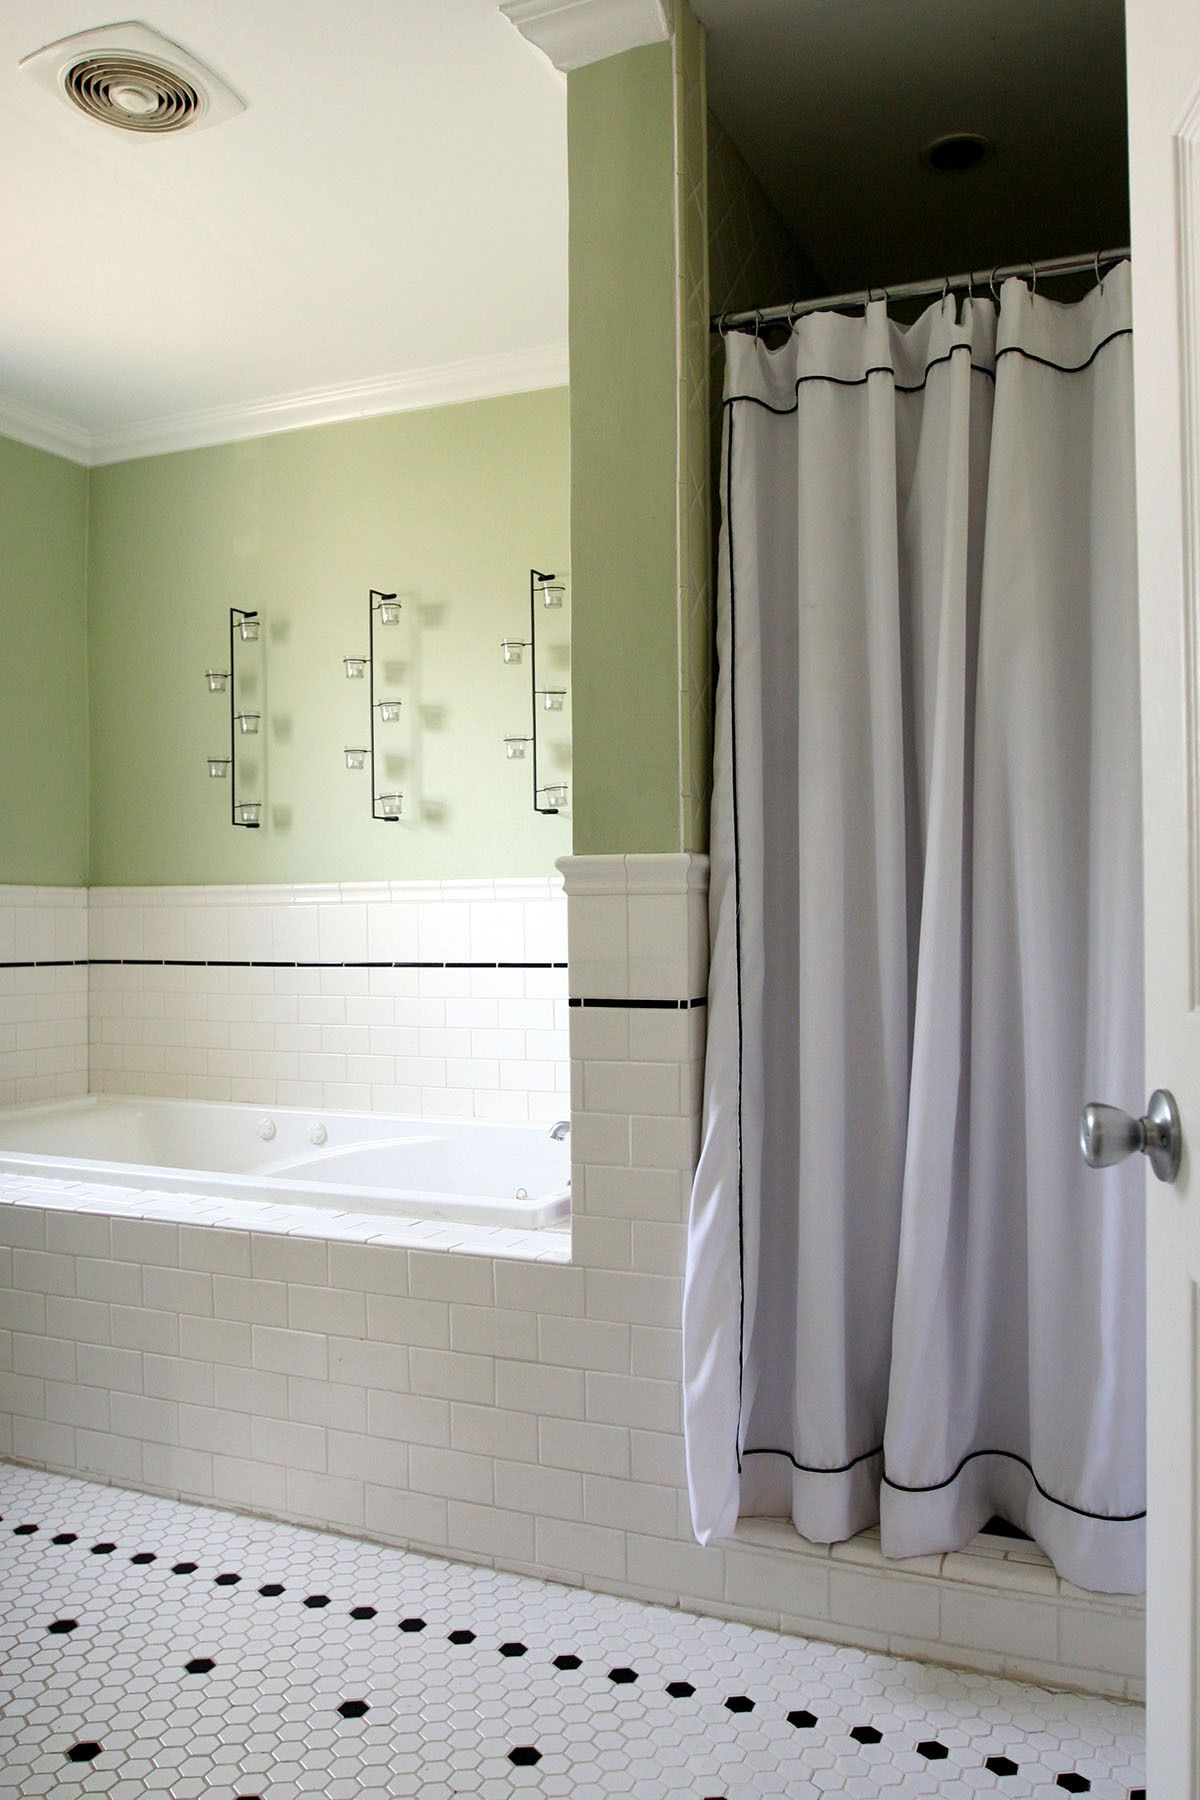 Paint colors that match this Apartment Therapy photo SW 6160 Best